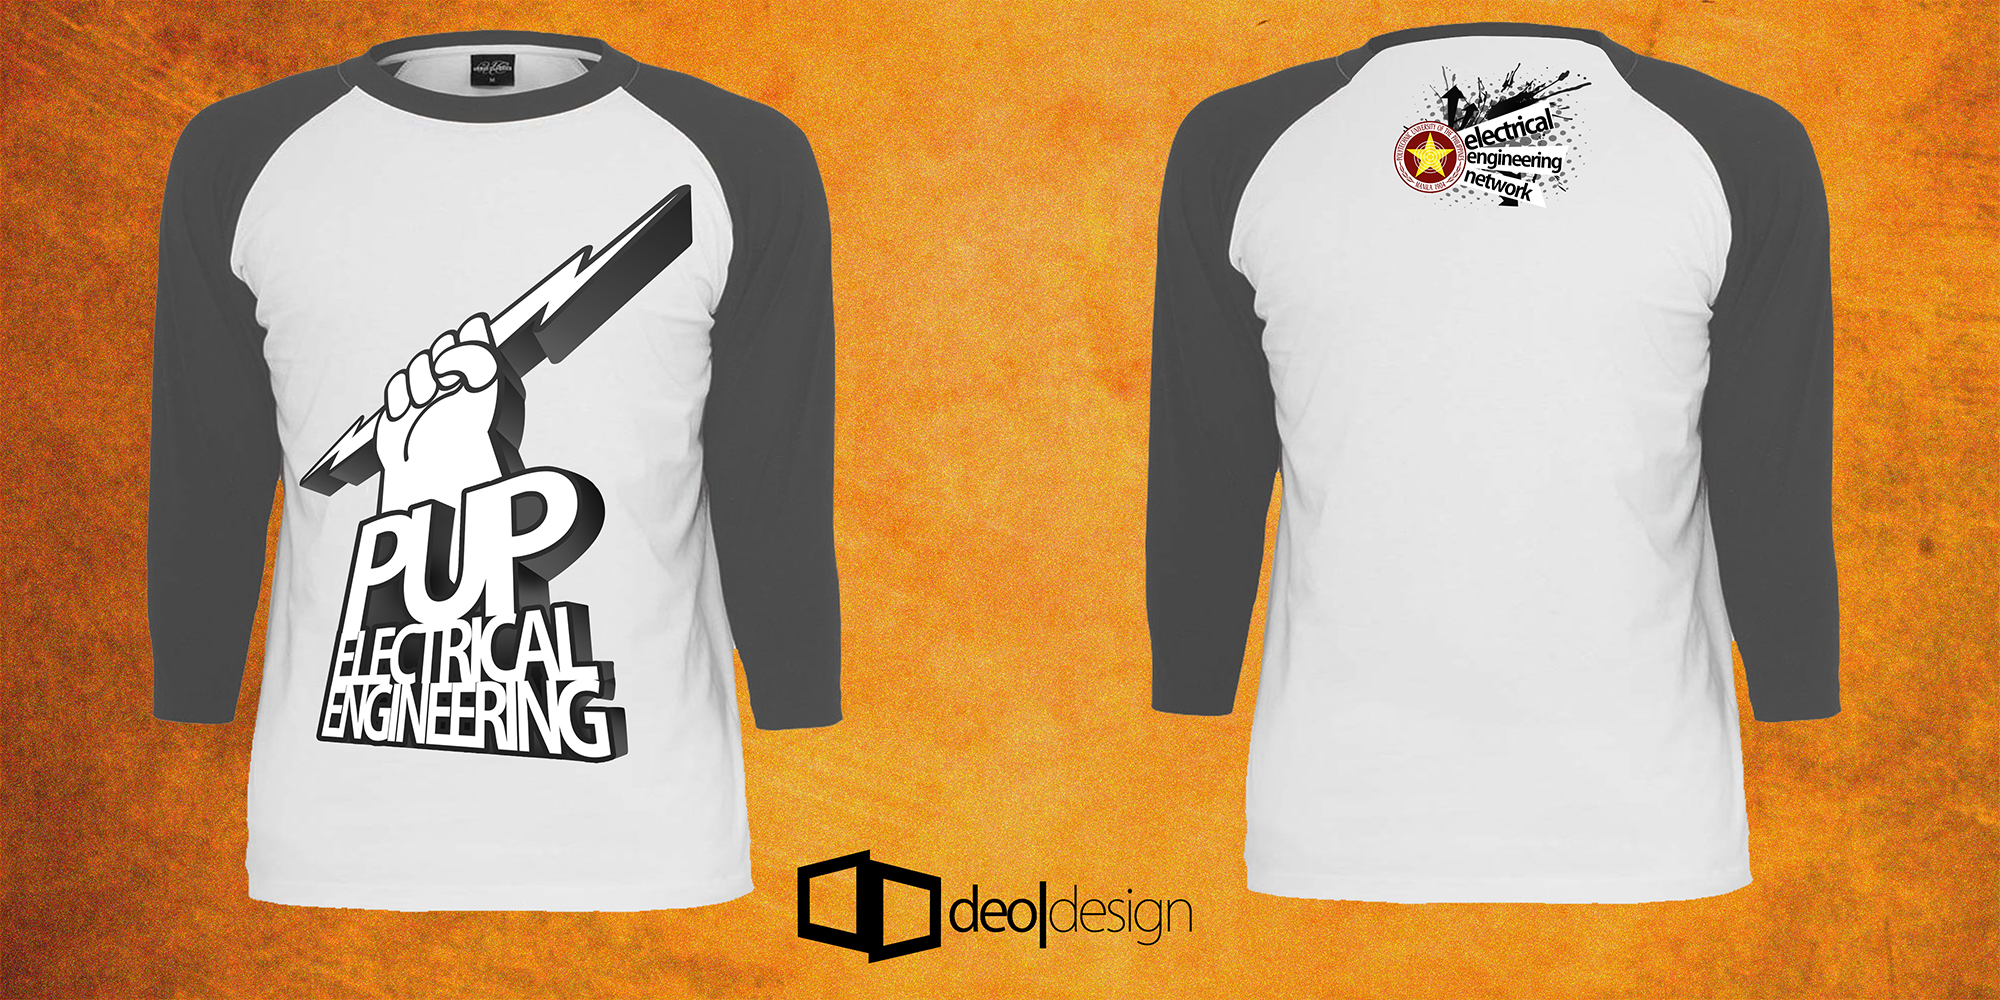 T shirt design 2 zeixs - Design T Shirt Engineering Electrical Engineering 3 4 Shirt Design Pup By Rafael Graphics